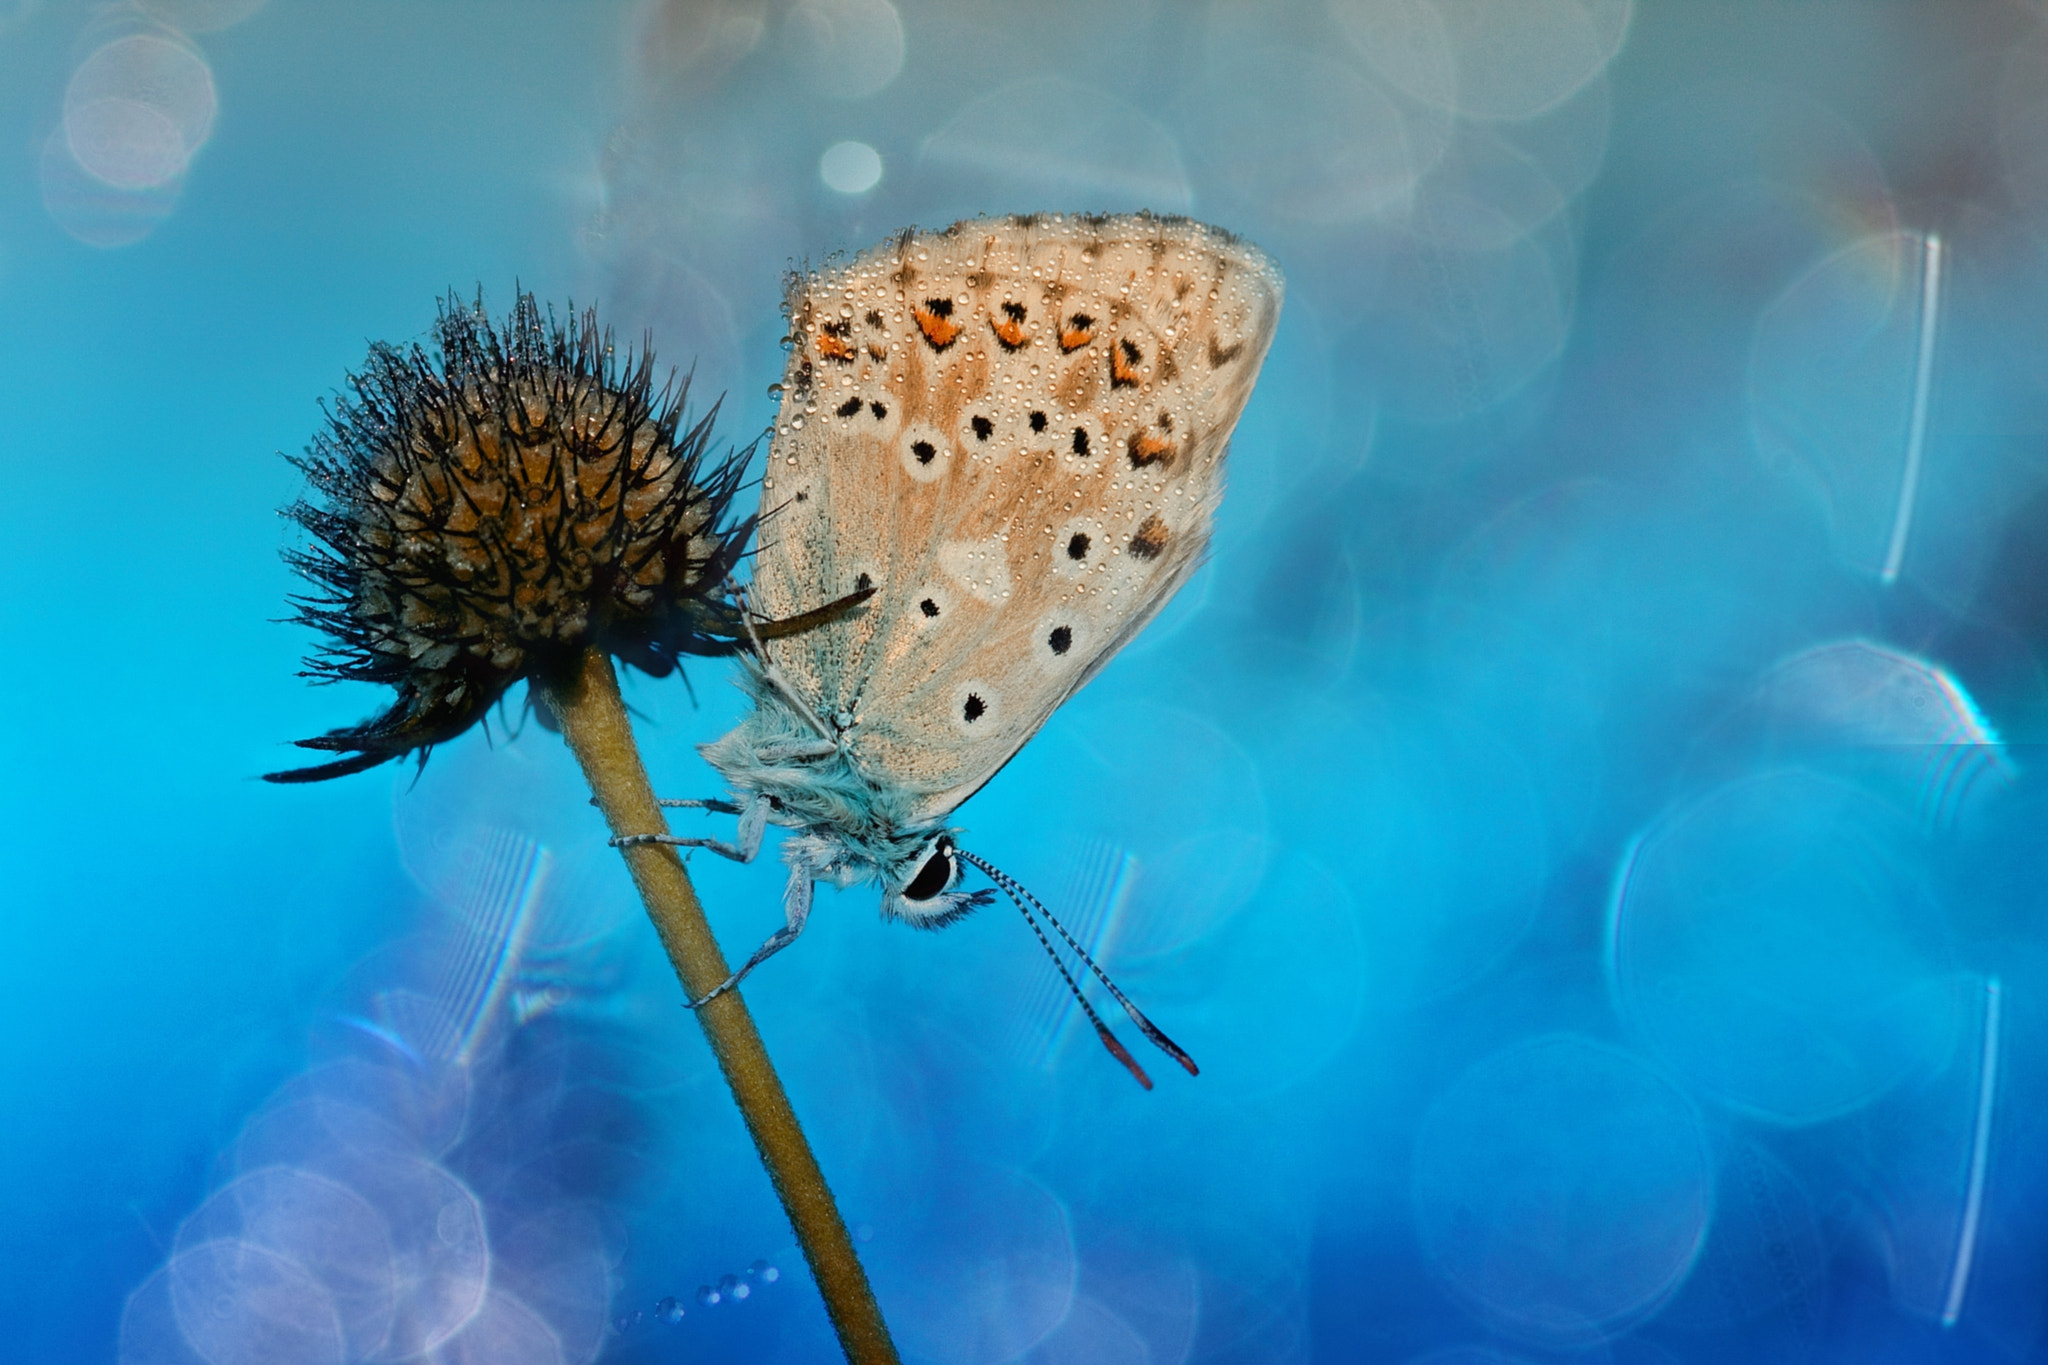 Photograph Bubbelicious  by Wil Mijer on 500px